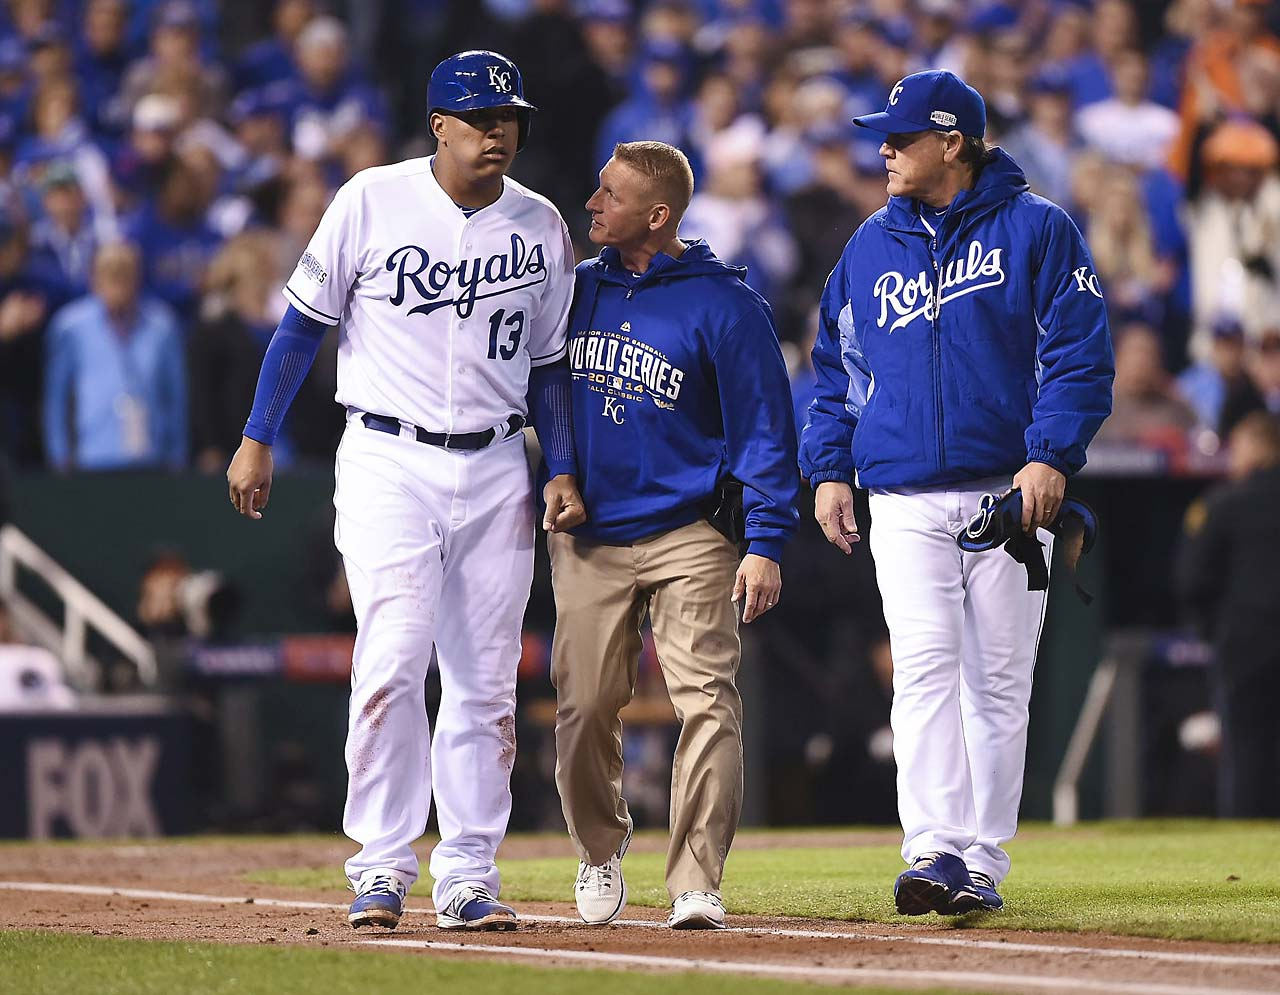 Perez gets escorted toward first base. He shook off the pain and remained in the game but was held hitless on the night.